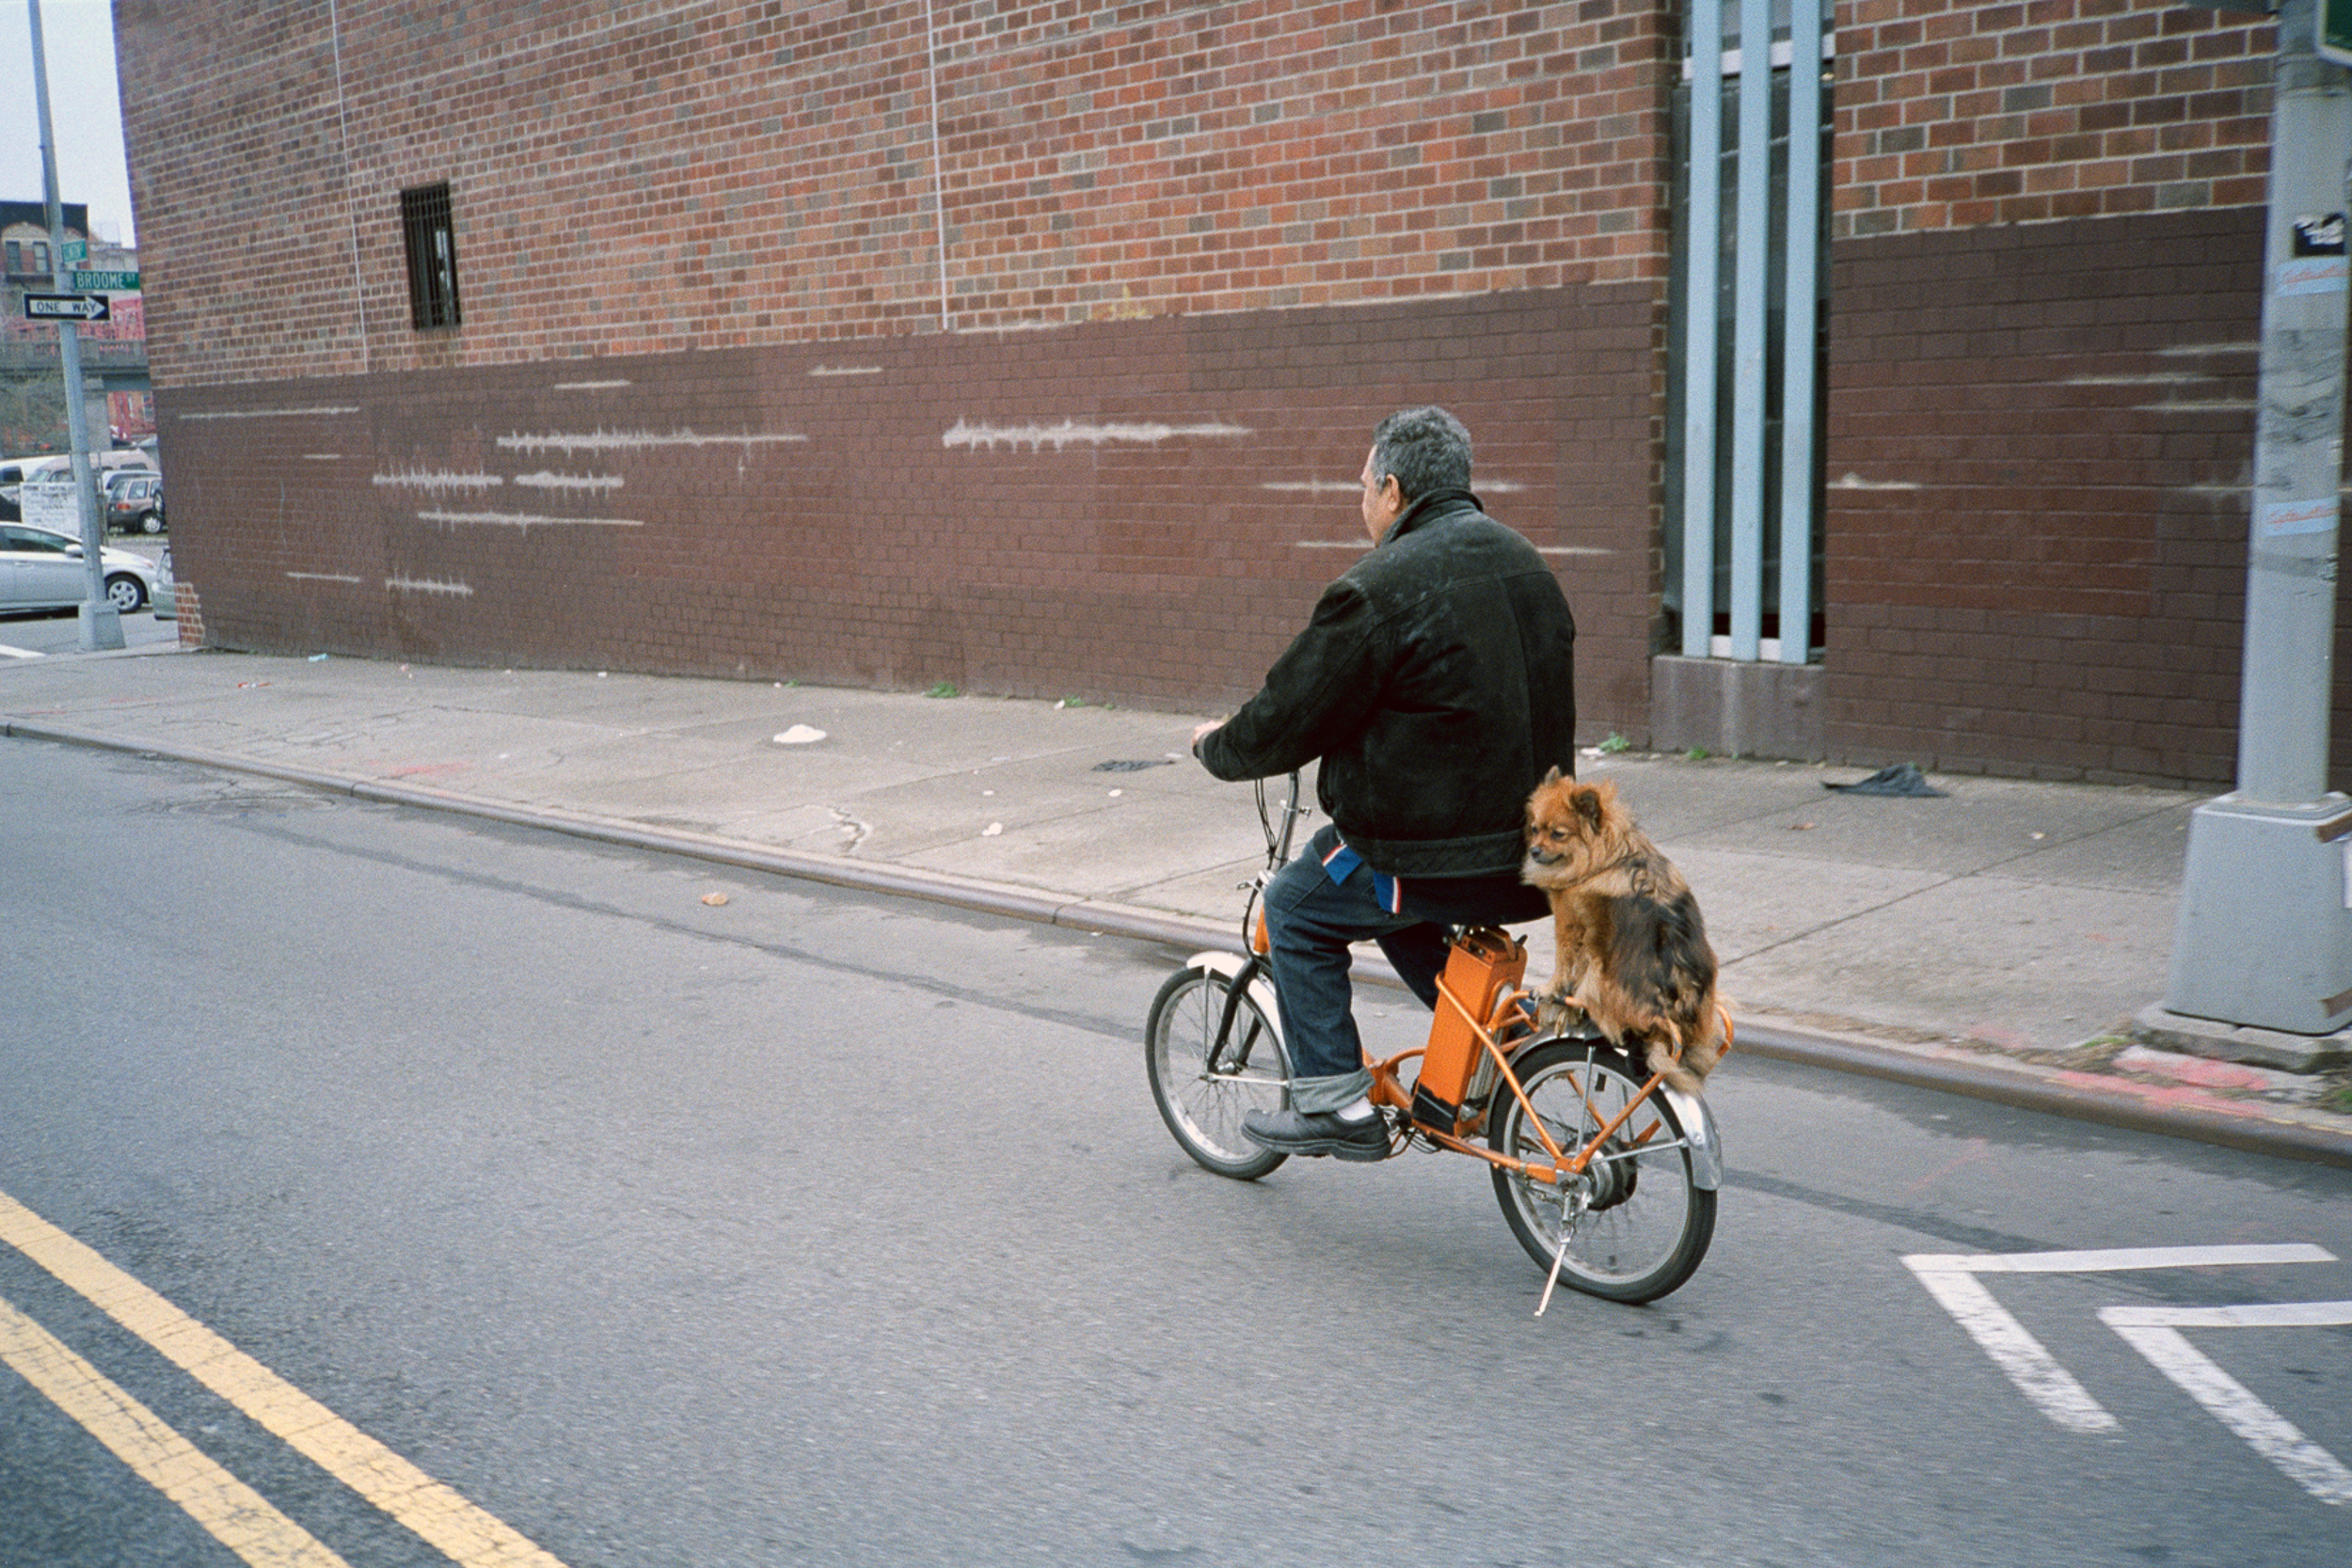 ScottMarceau_dog on bike